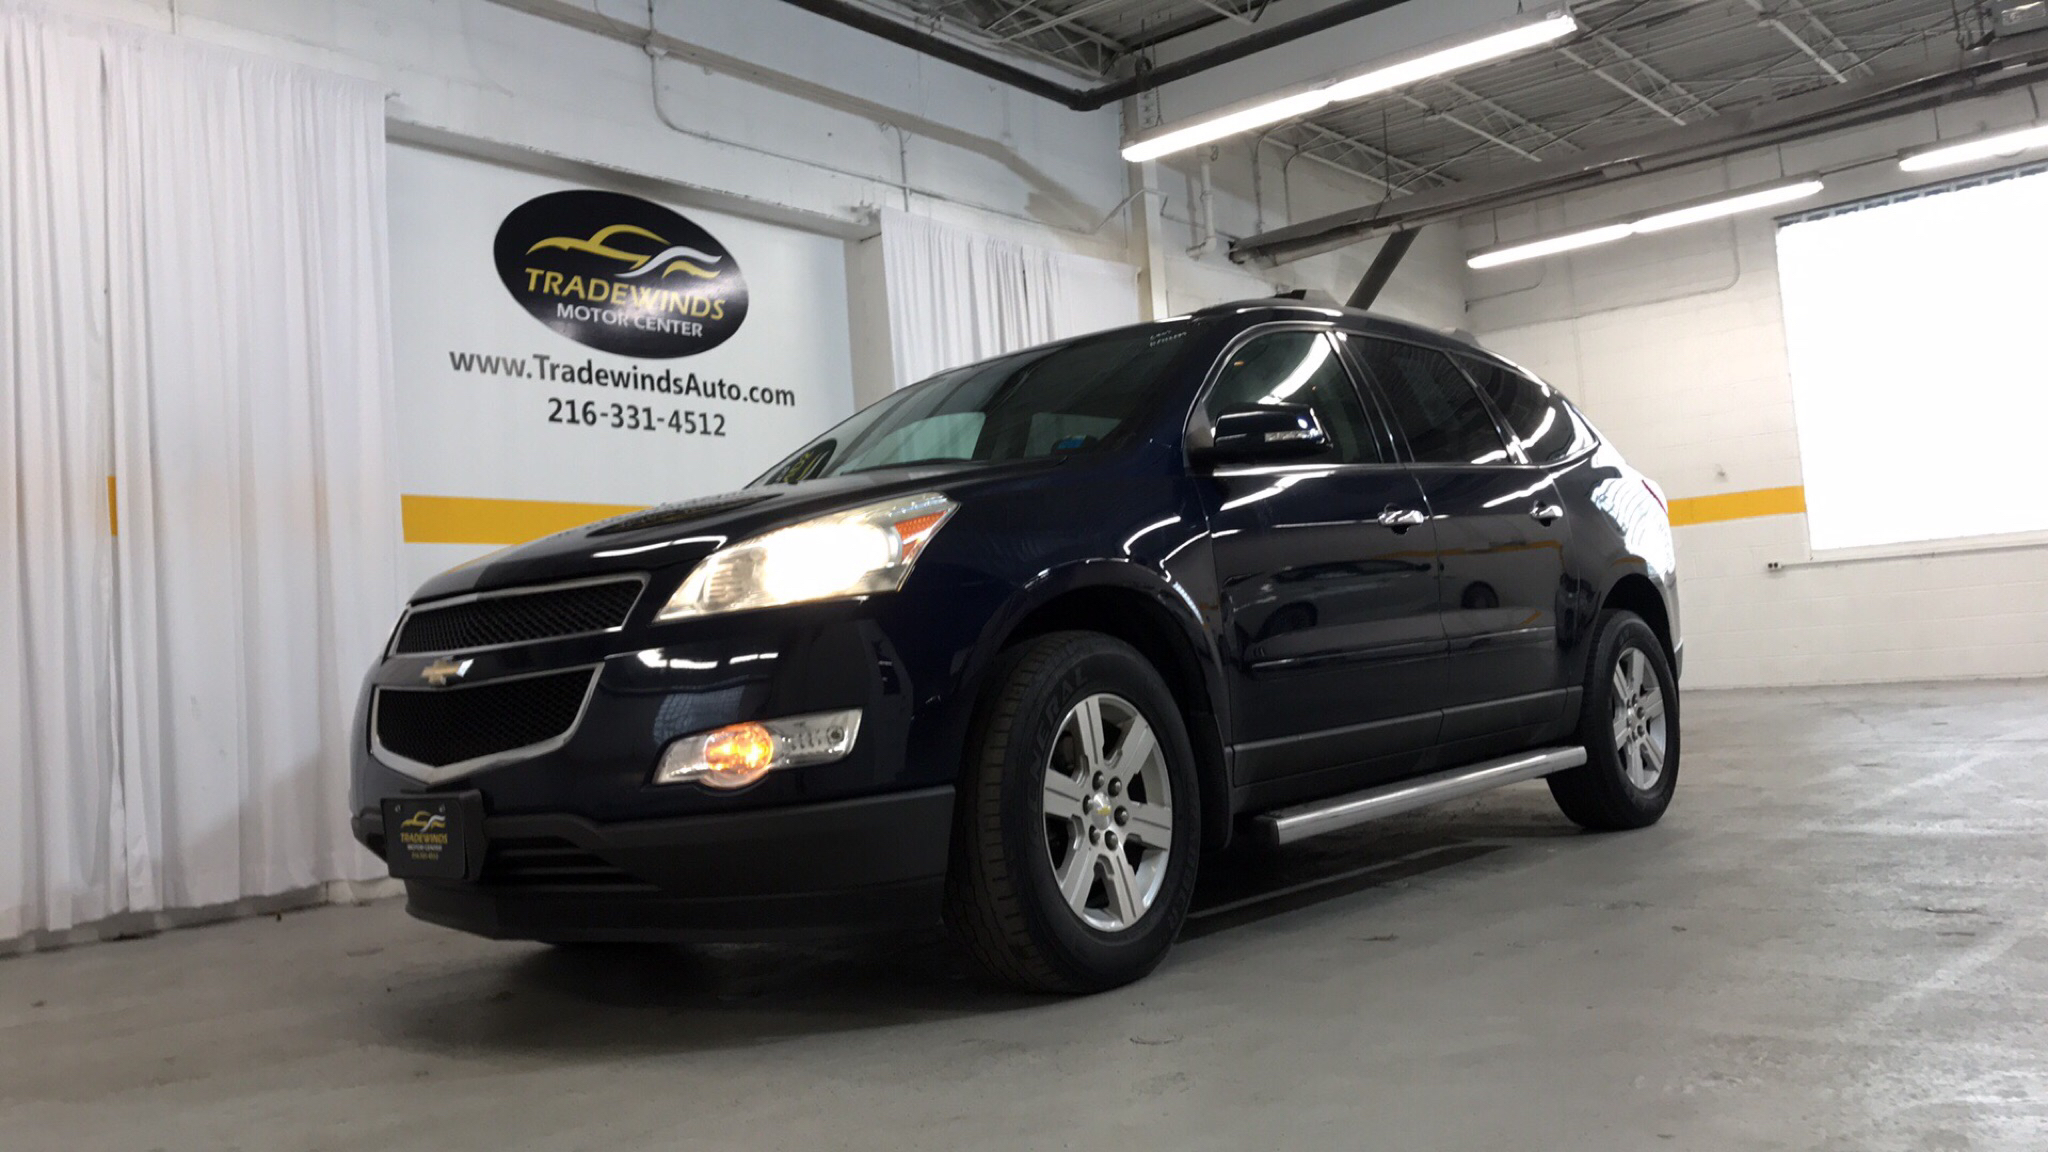 2011 CHEVROLET TRAVERSE LT for sale at Tradewinds Motor Center